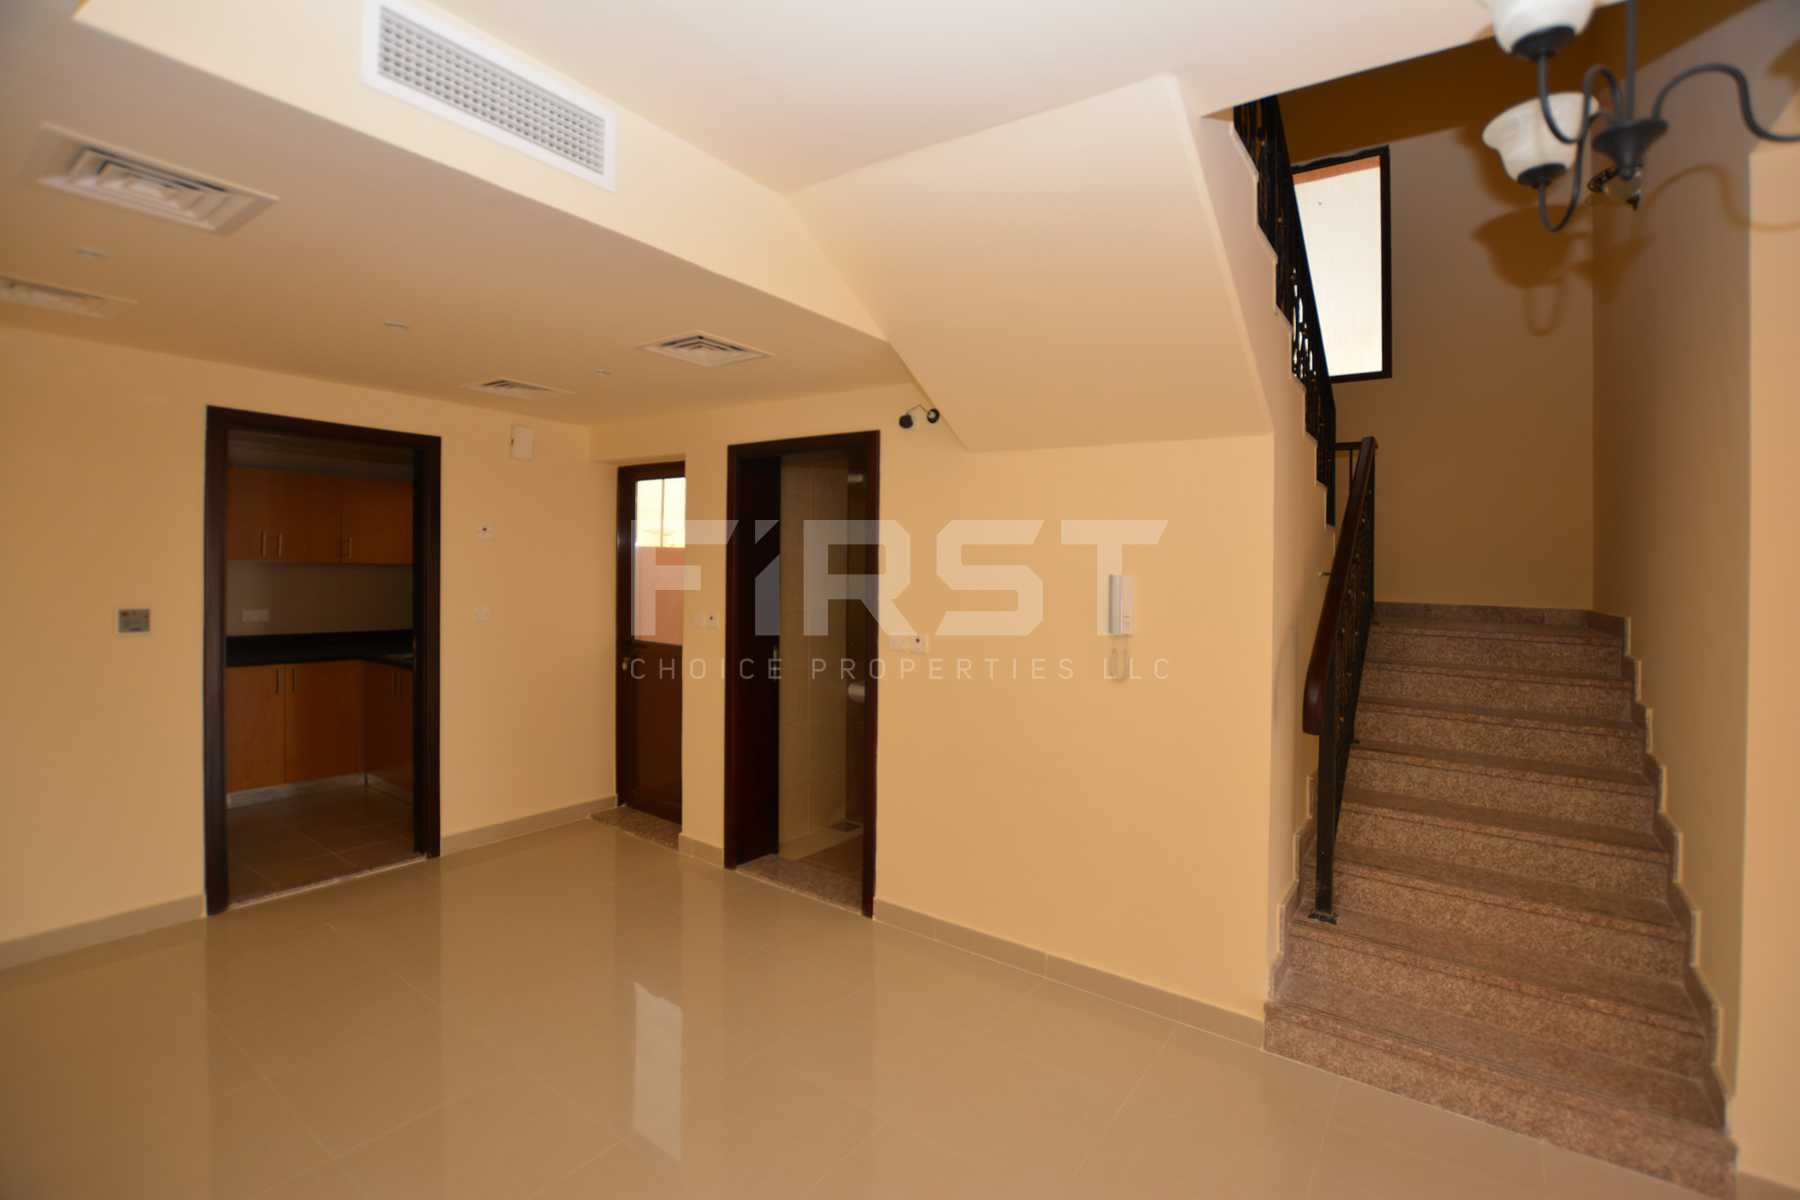 Internal Photo of 2 Bedroom Villa in Hydra Village Abu Dhabi UAE (13).jpg